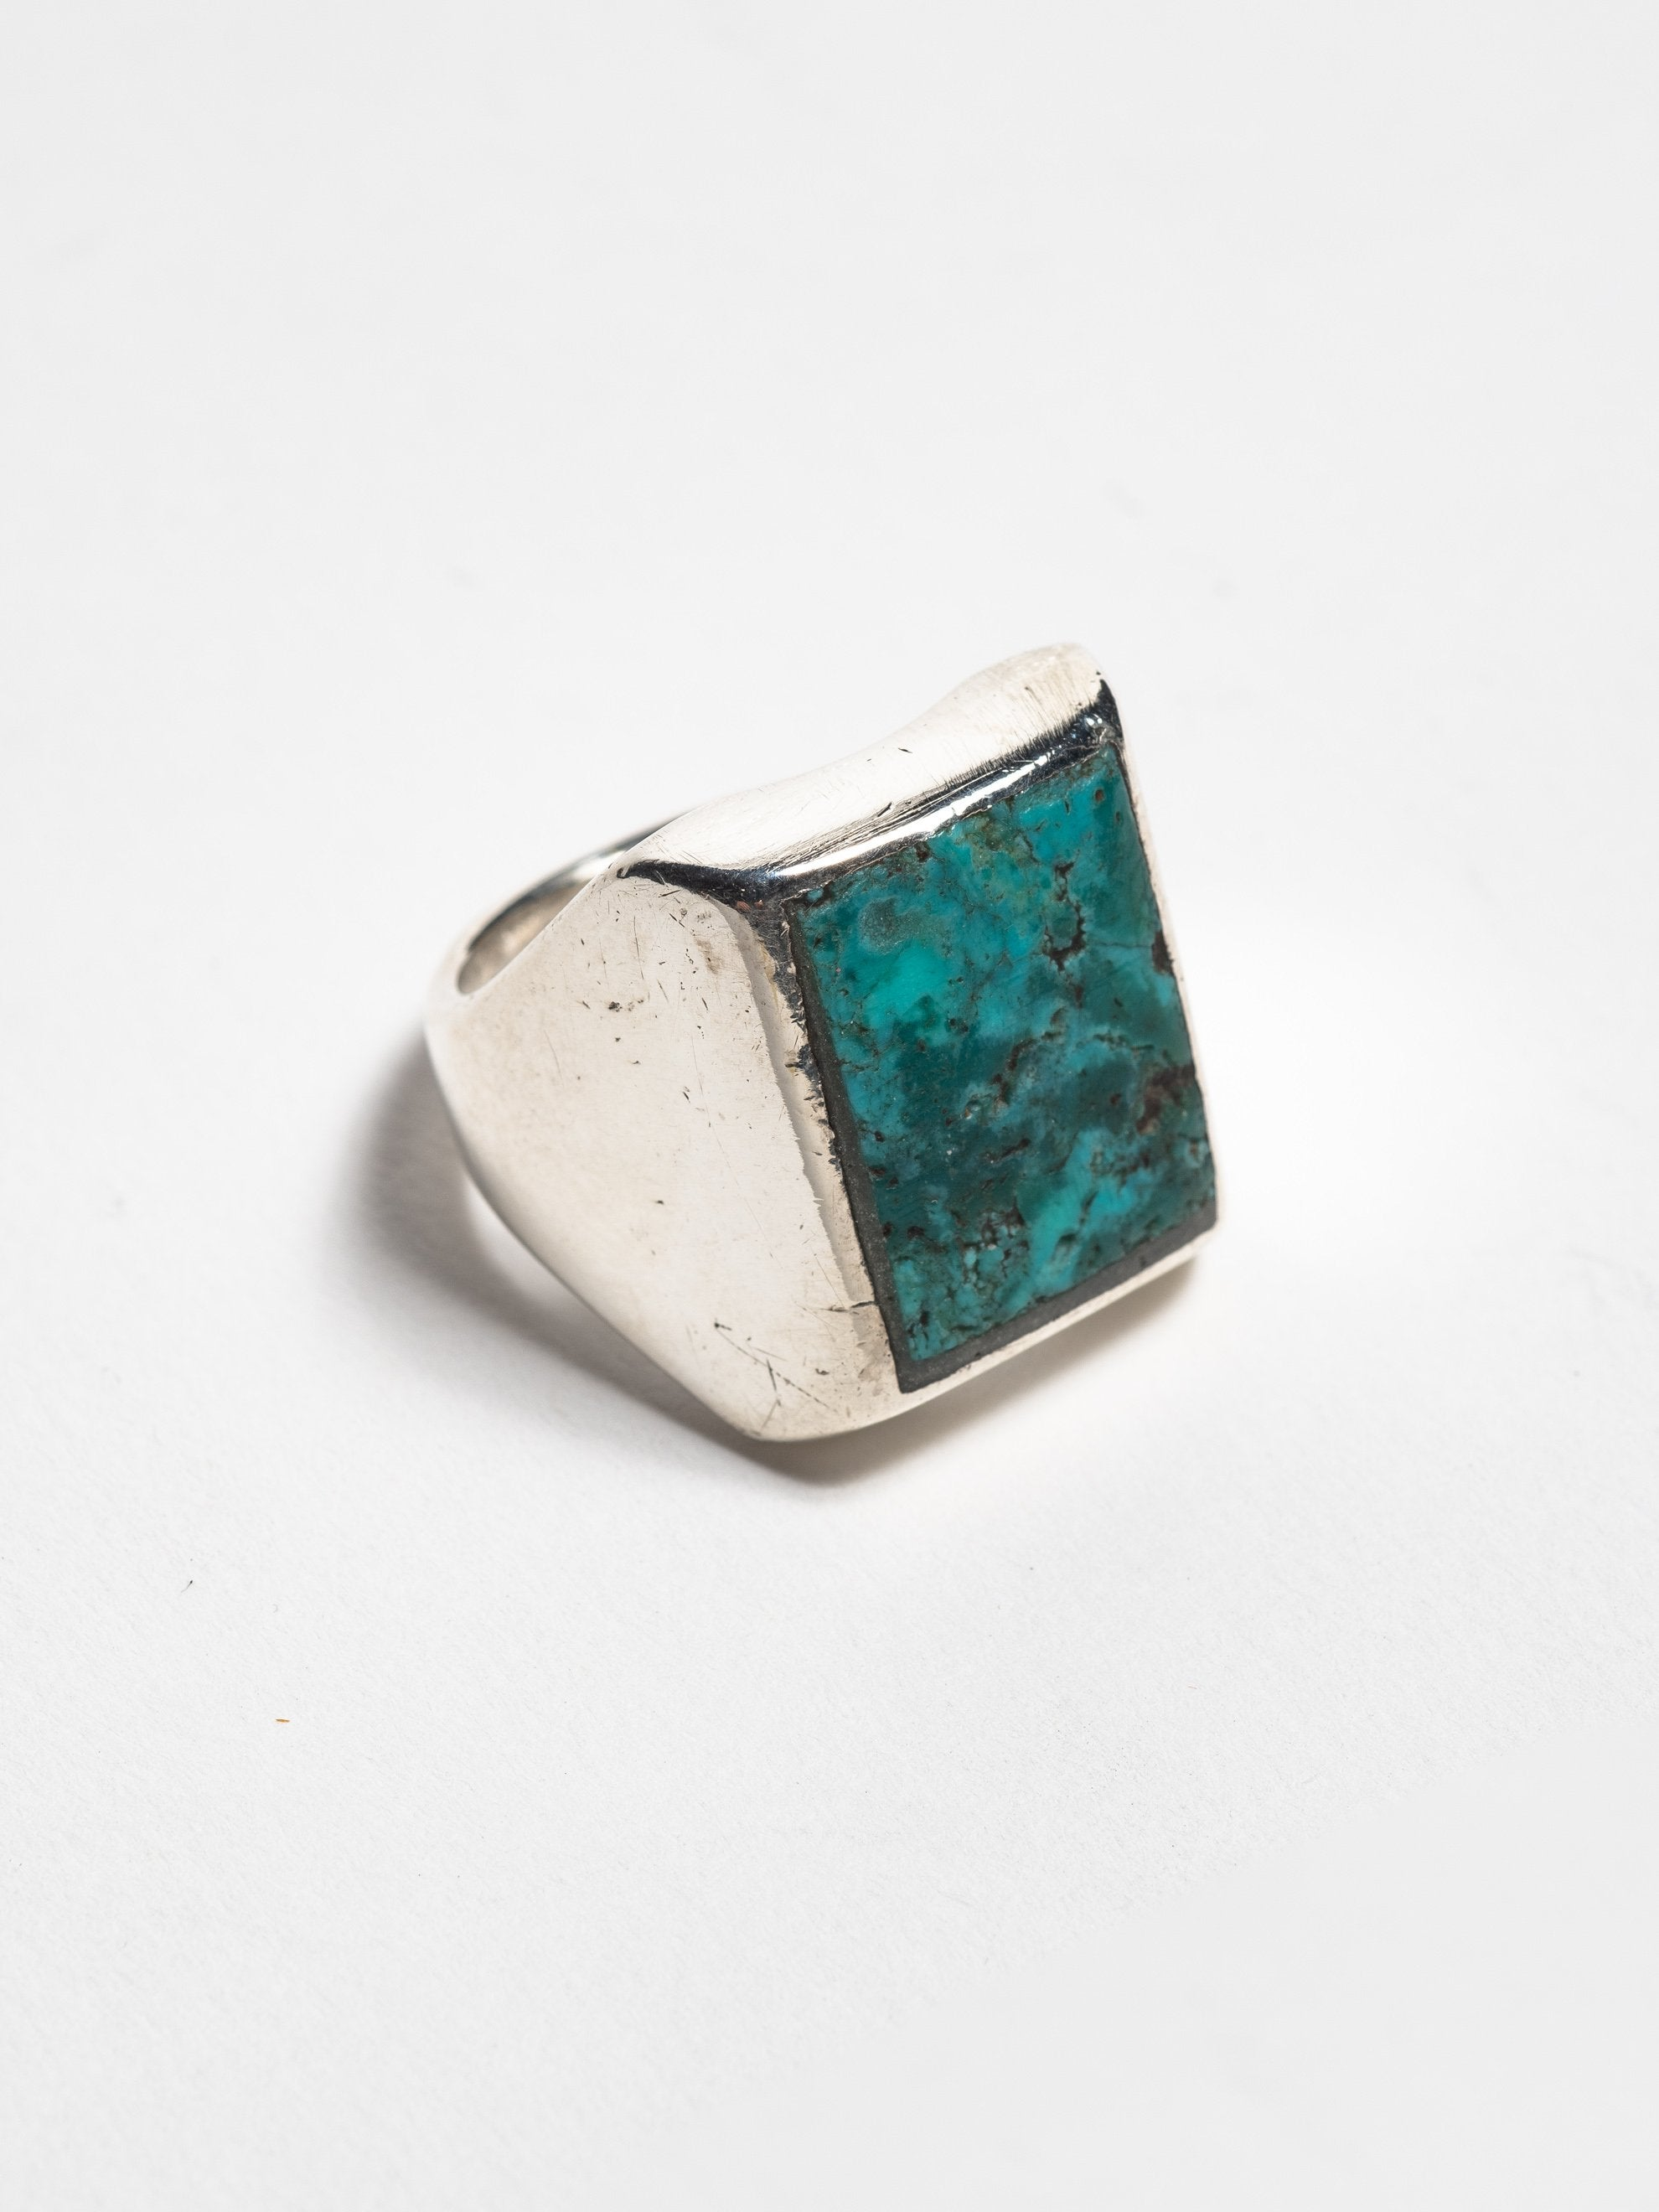 Sterling Silver Vintage Navajo Sterling Silver Heavy Gauge Ring with inset turquoise stone 1